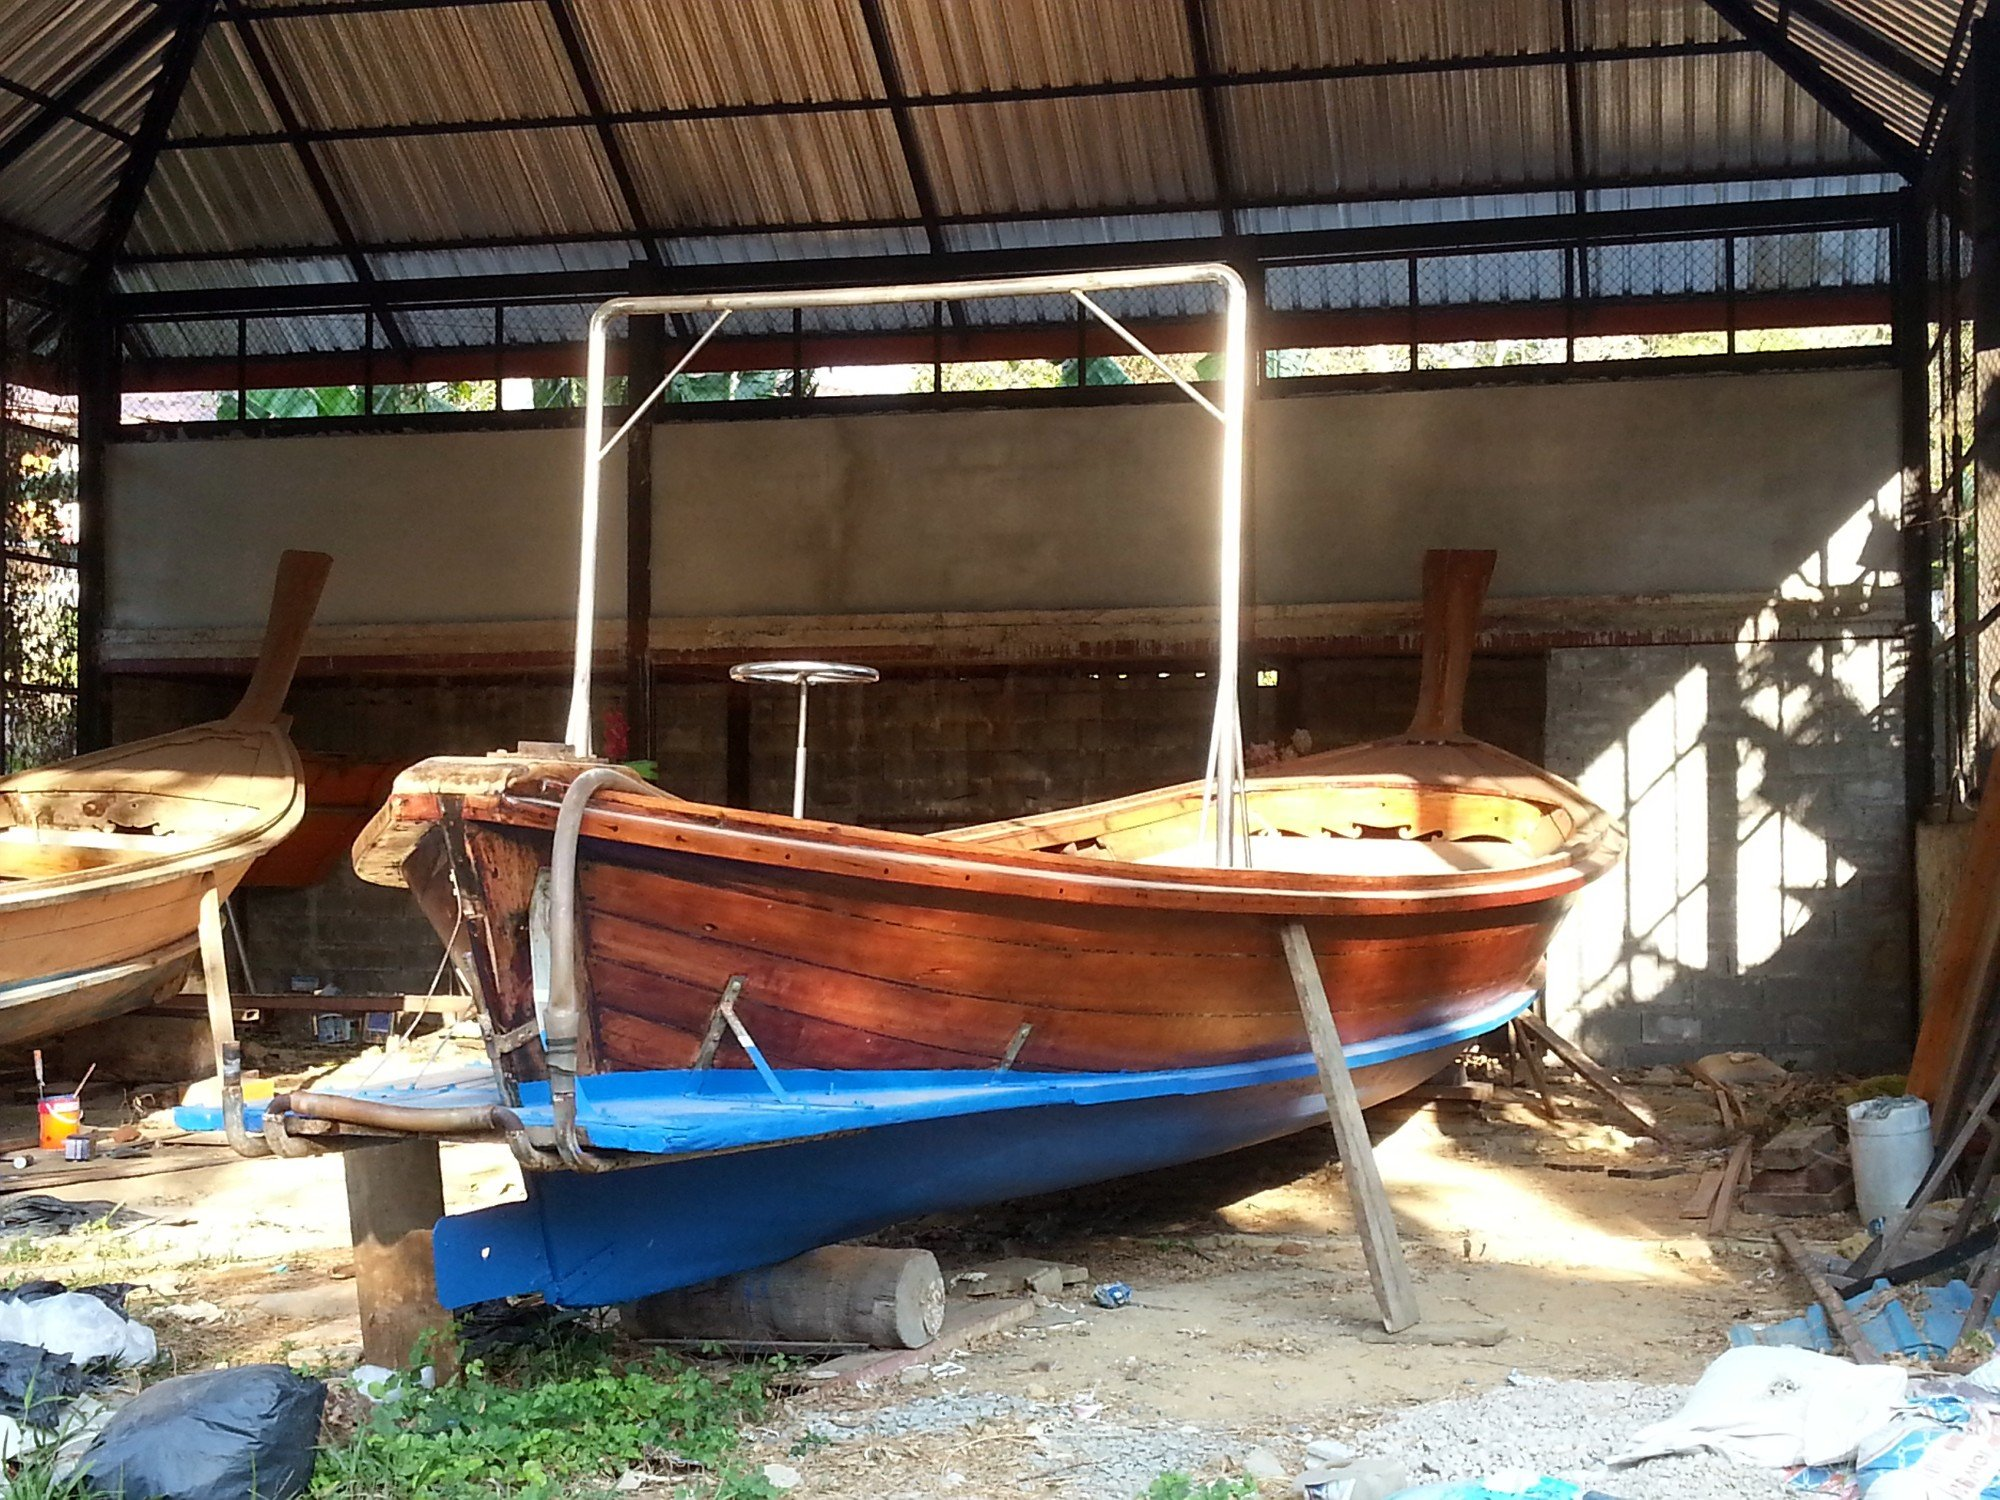 'hu tor reua' is the Thai word for boatyard